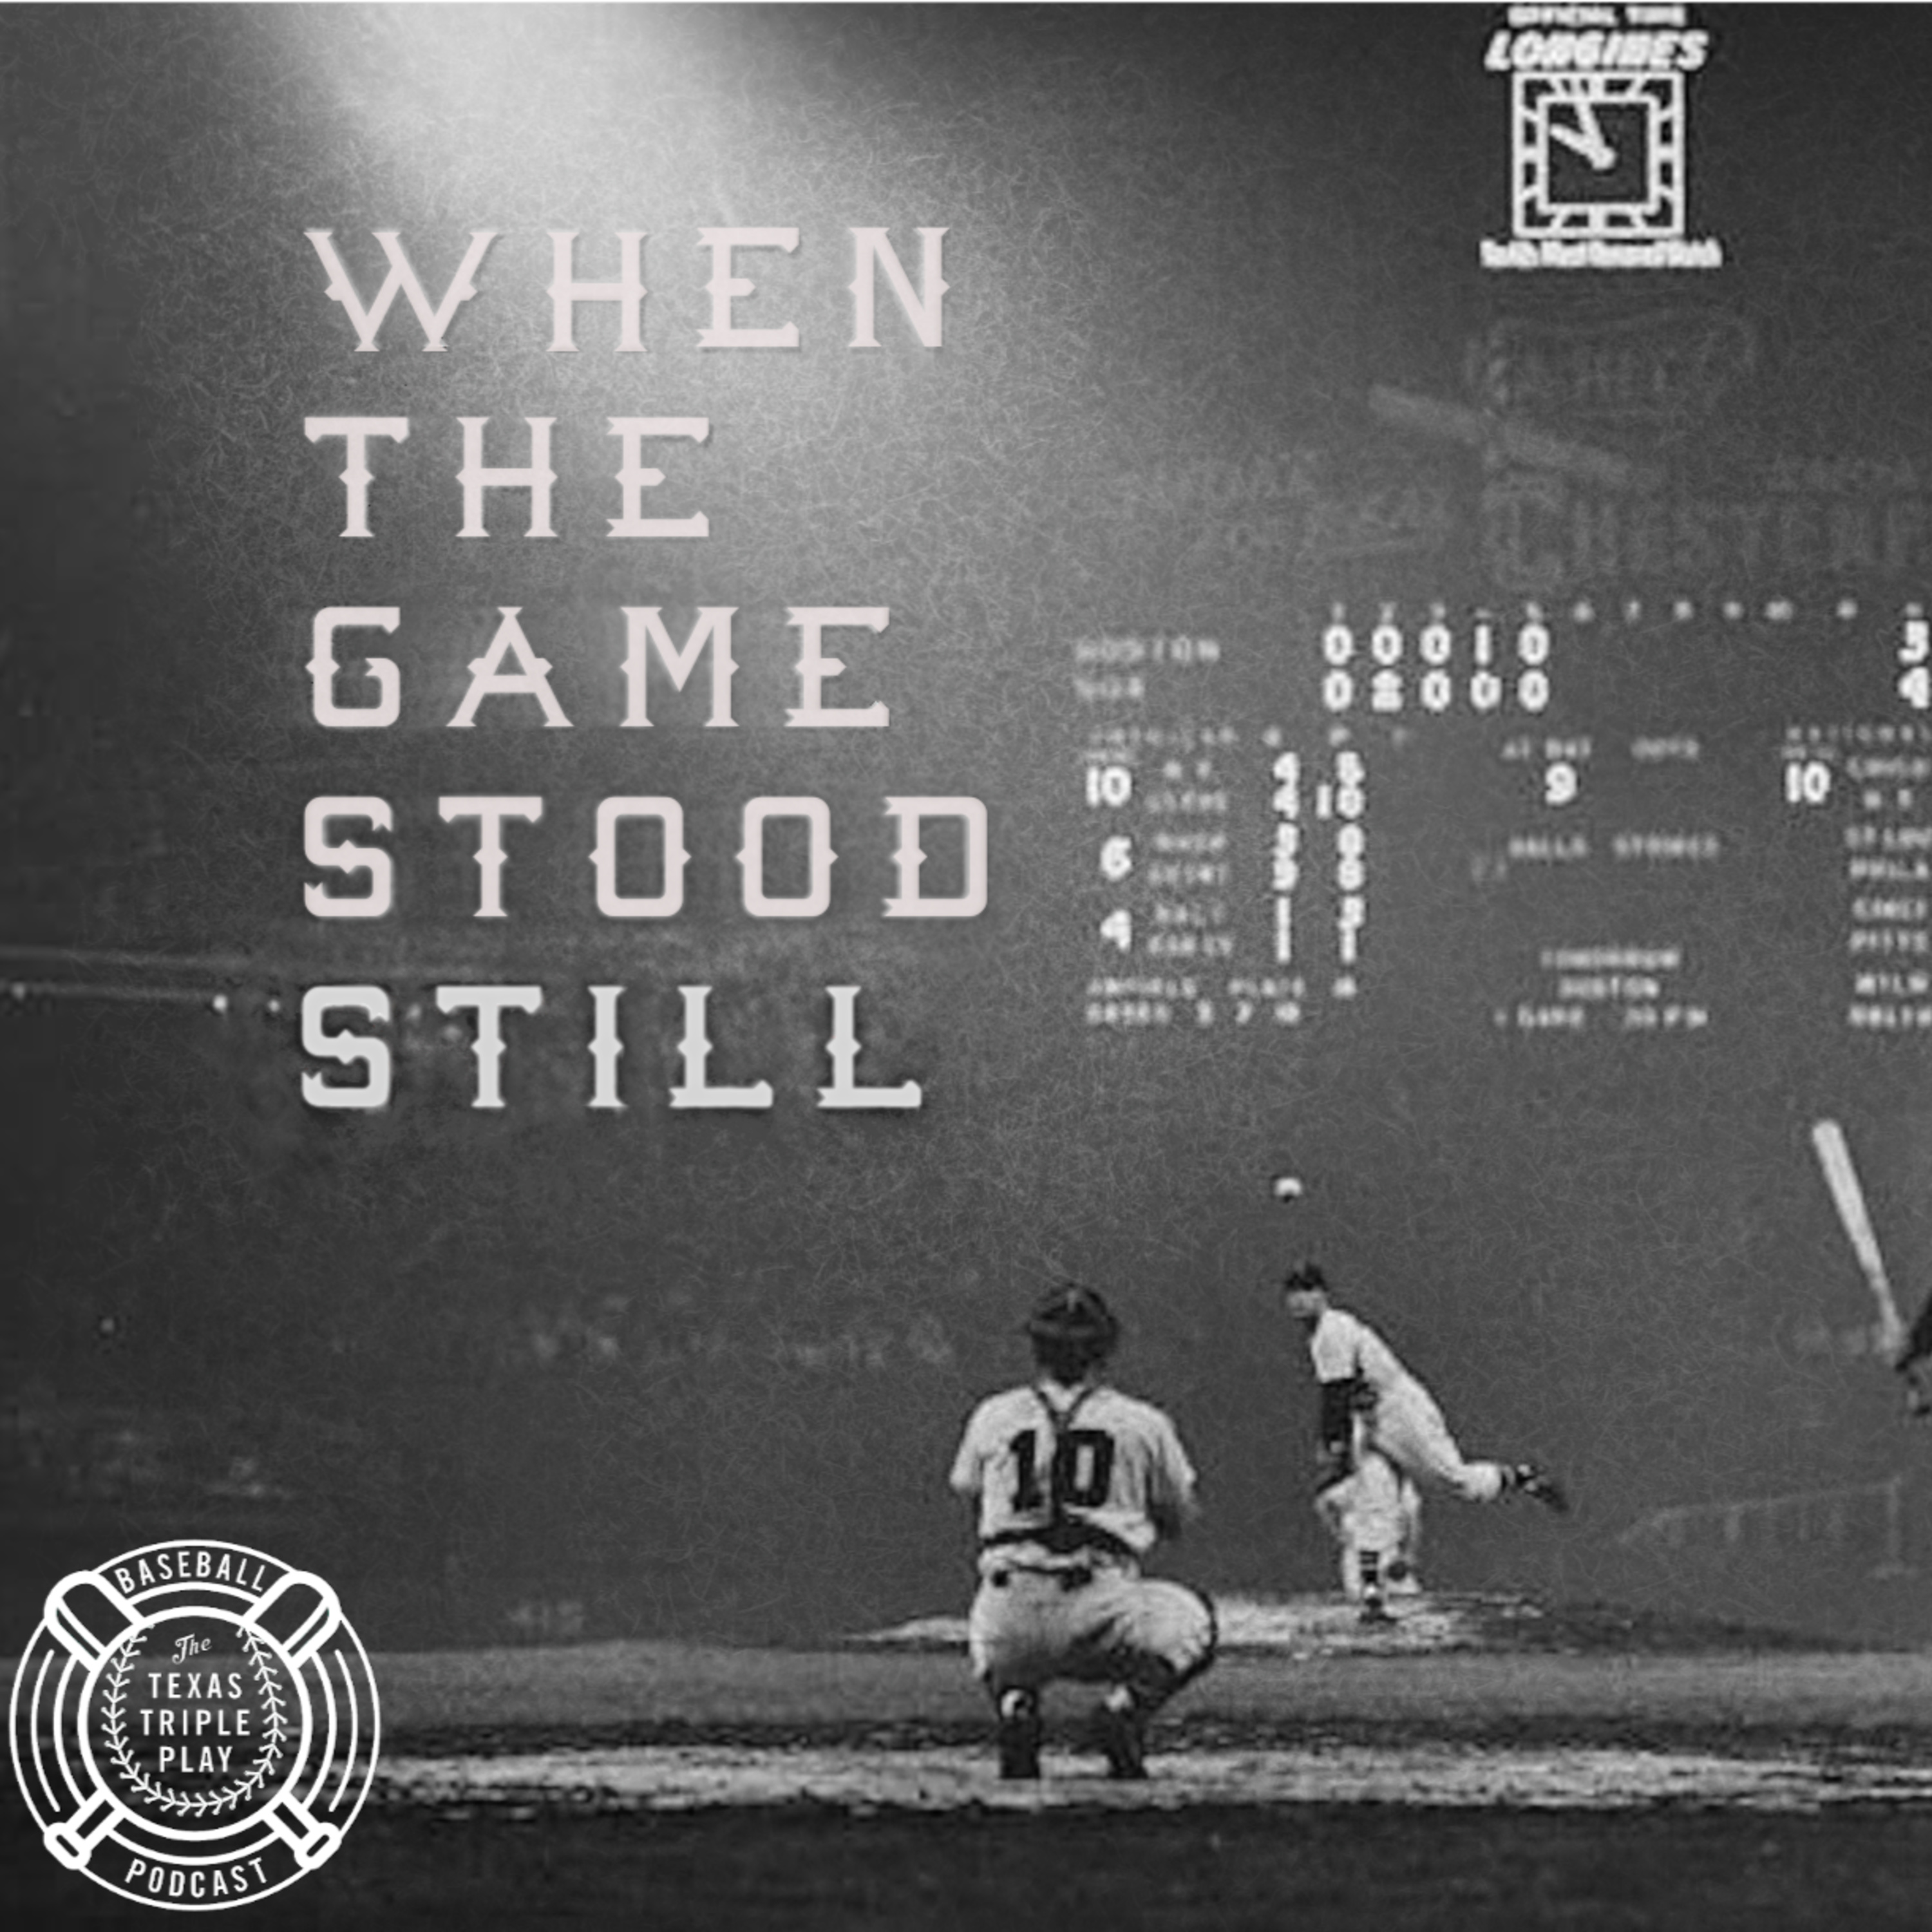 New MLB season agreement and Part 2 of When The Game Stood Still!